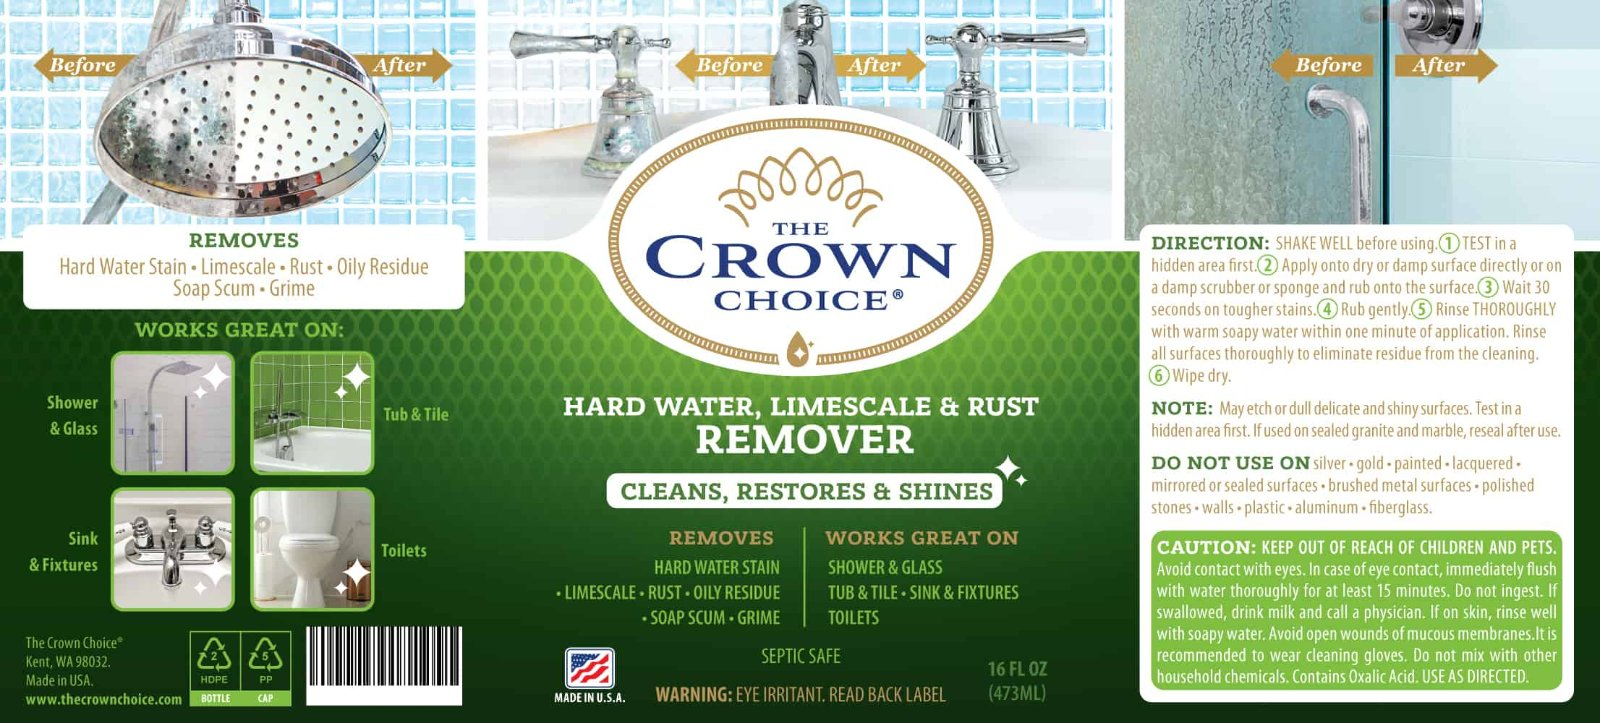 The Best Rust Stain Remover (2021) 4